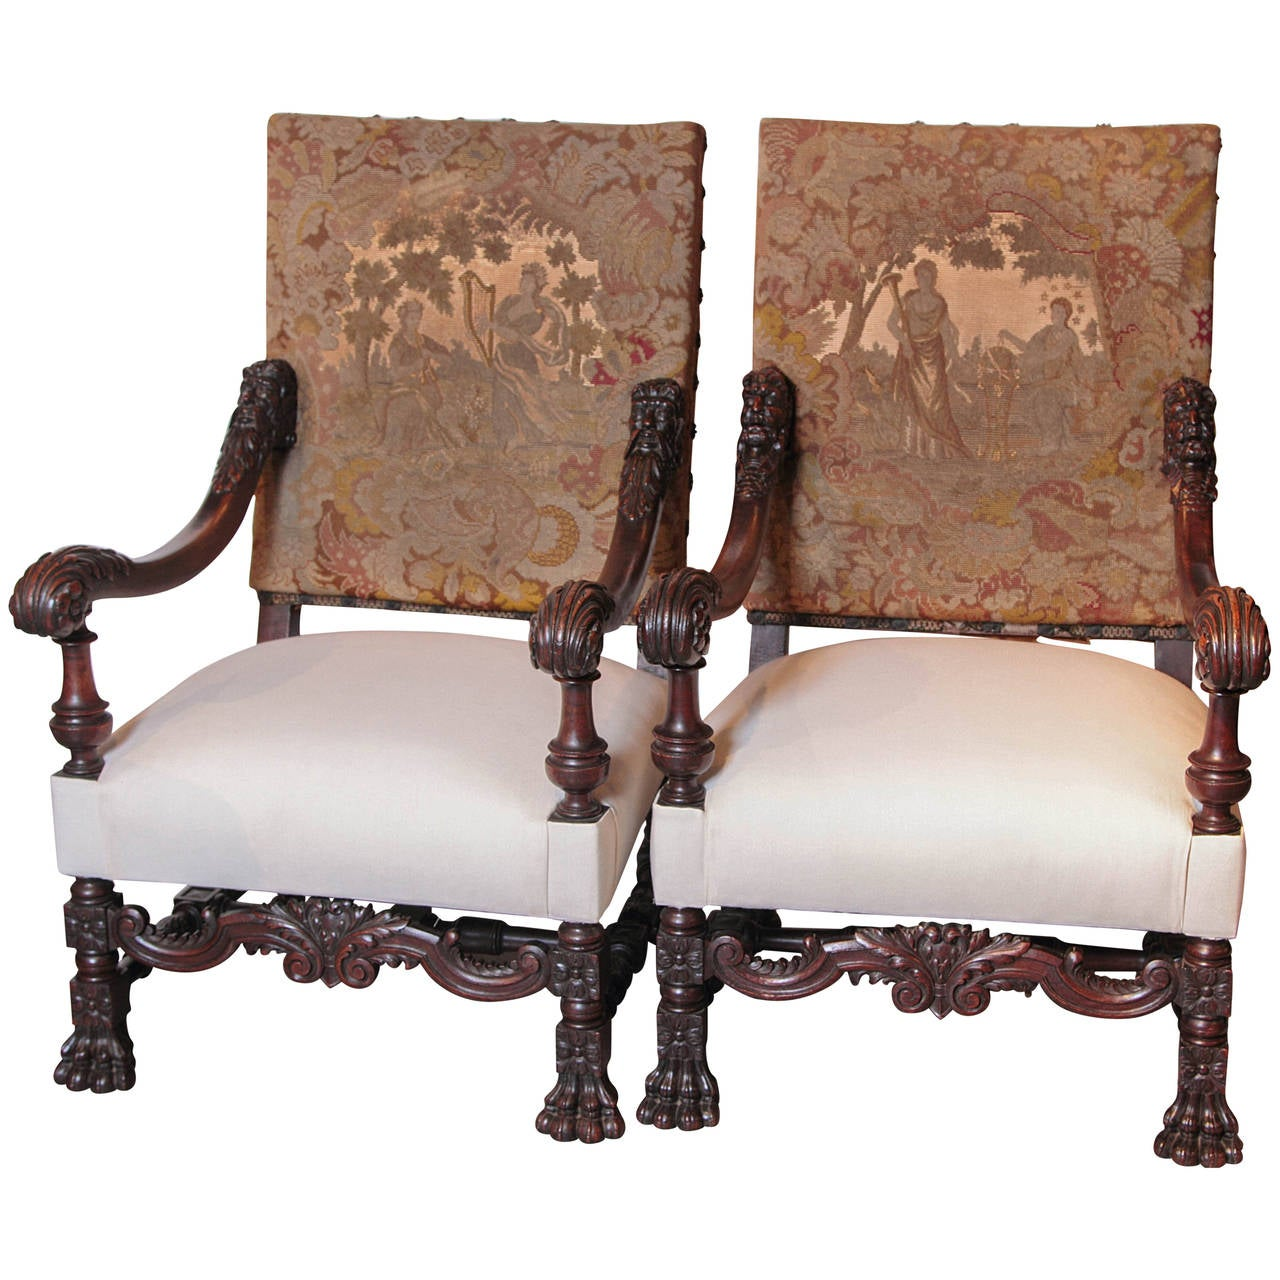 feet for chairs chair stand up fitness test pair of antique louis xiv style walnut wood armchairs with